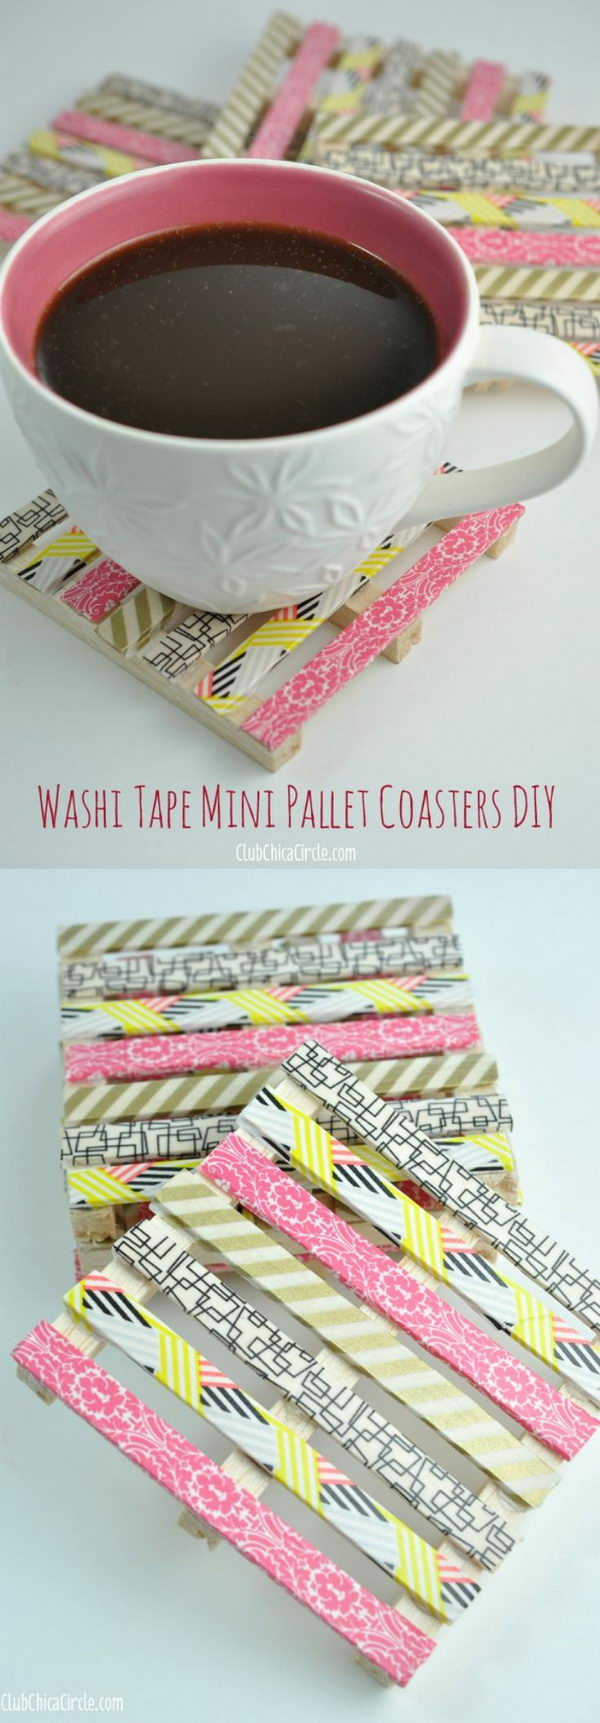 Washi Tape Mini Wood Pallet Coasters.